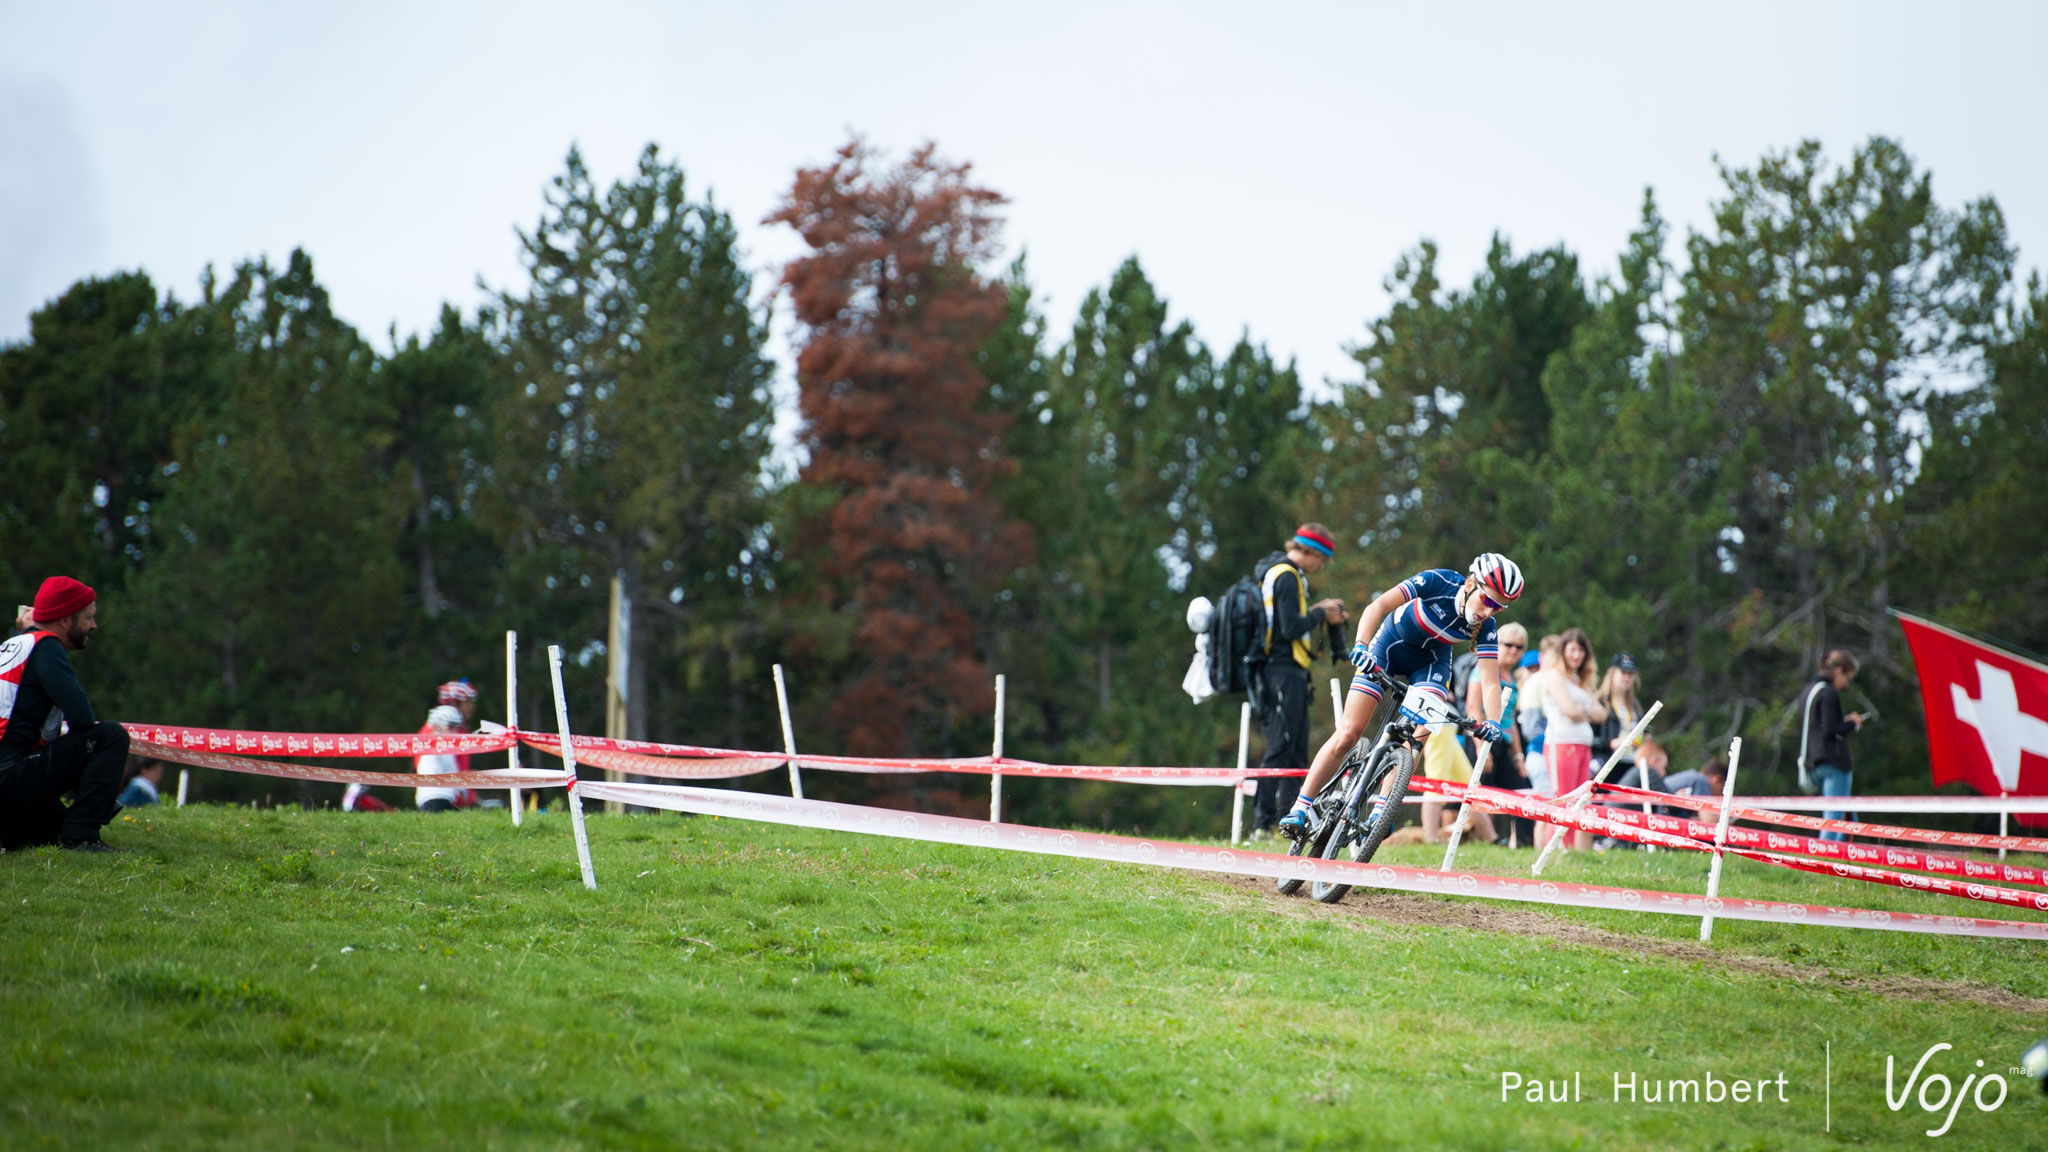 Worldchamps-2015-vojo-paul-humbert-xc-relai-4